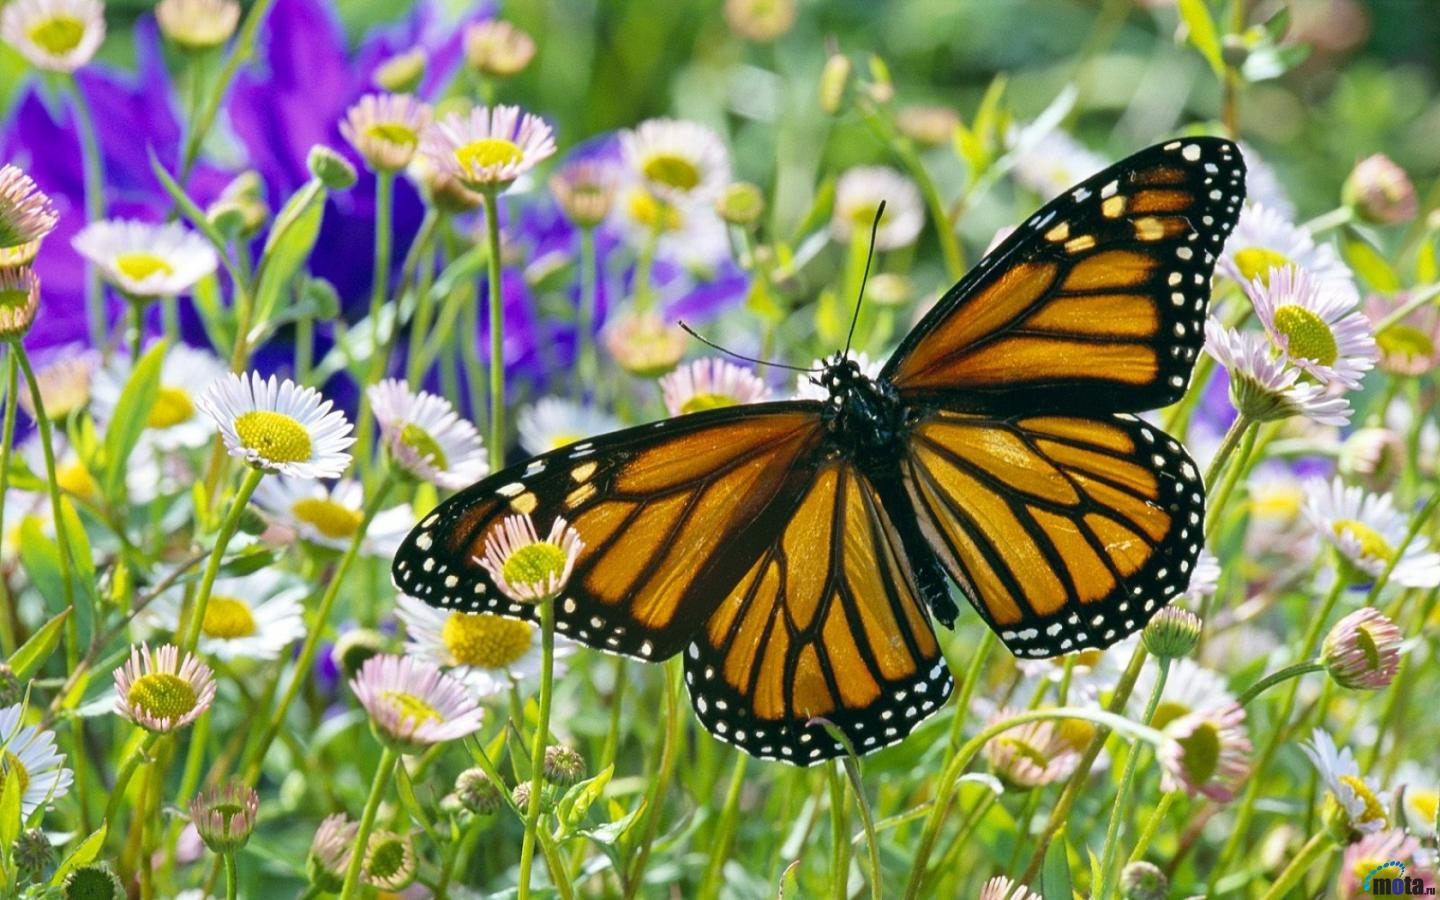 Download Wallpaper Monarch Butterfly in a Daisy Field 1440x900